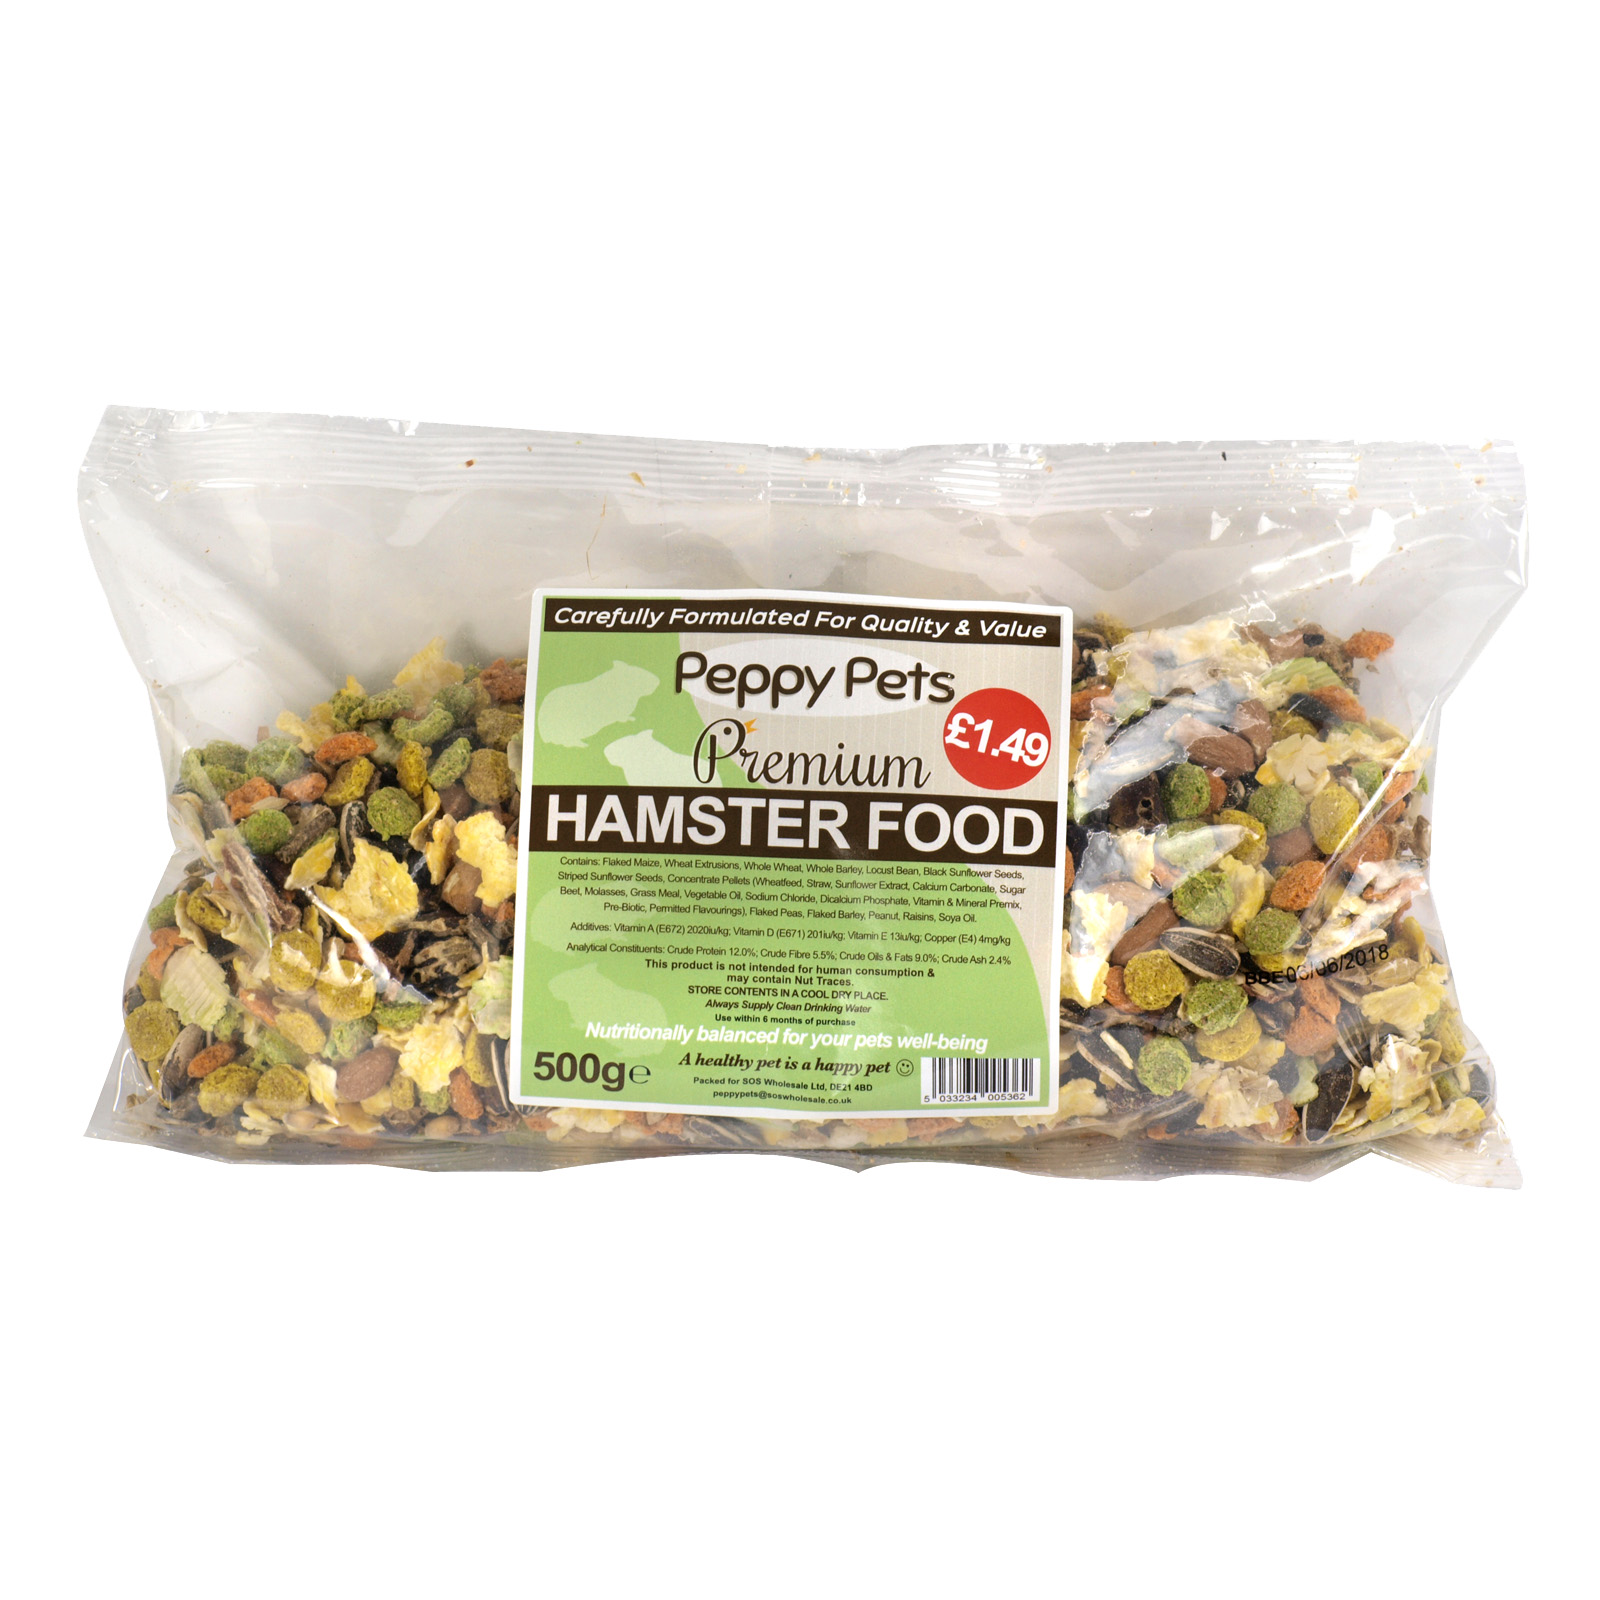 PEPPY PETS HAMSTER FOOD PM£1.49 500GM